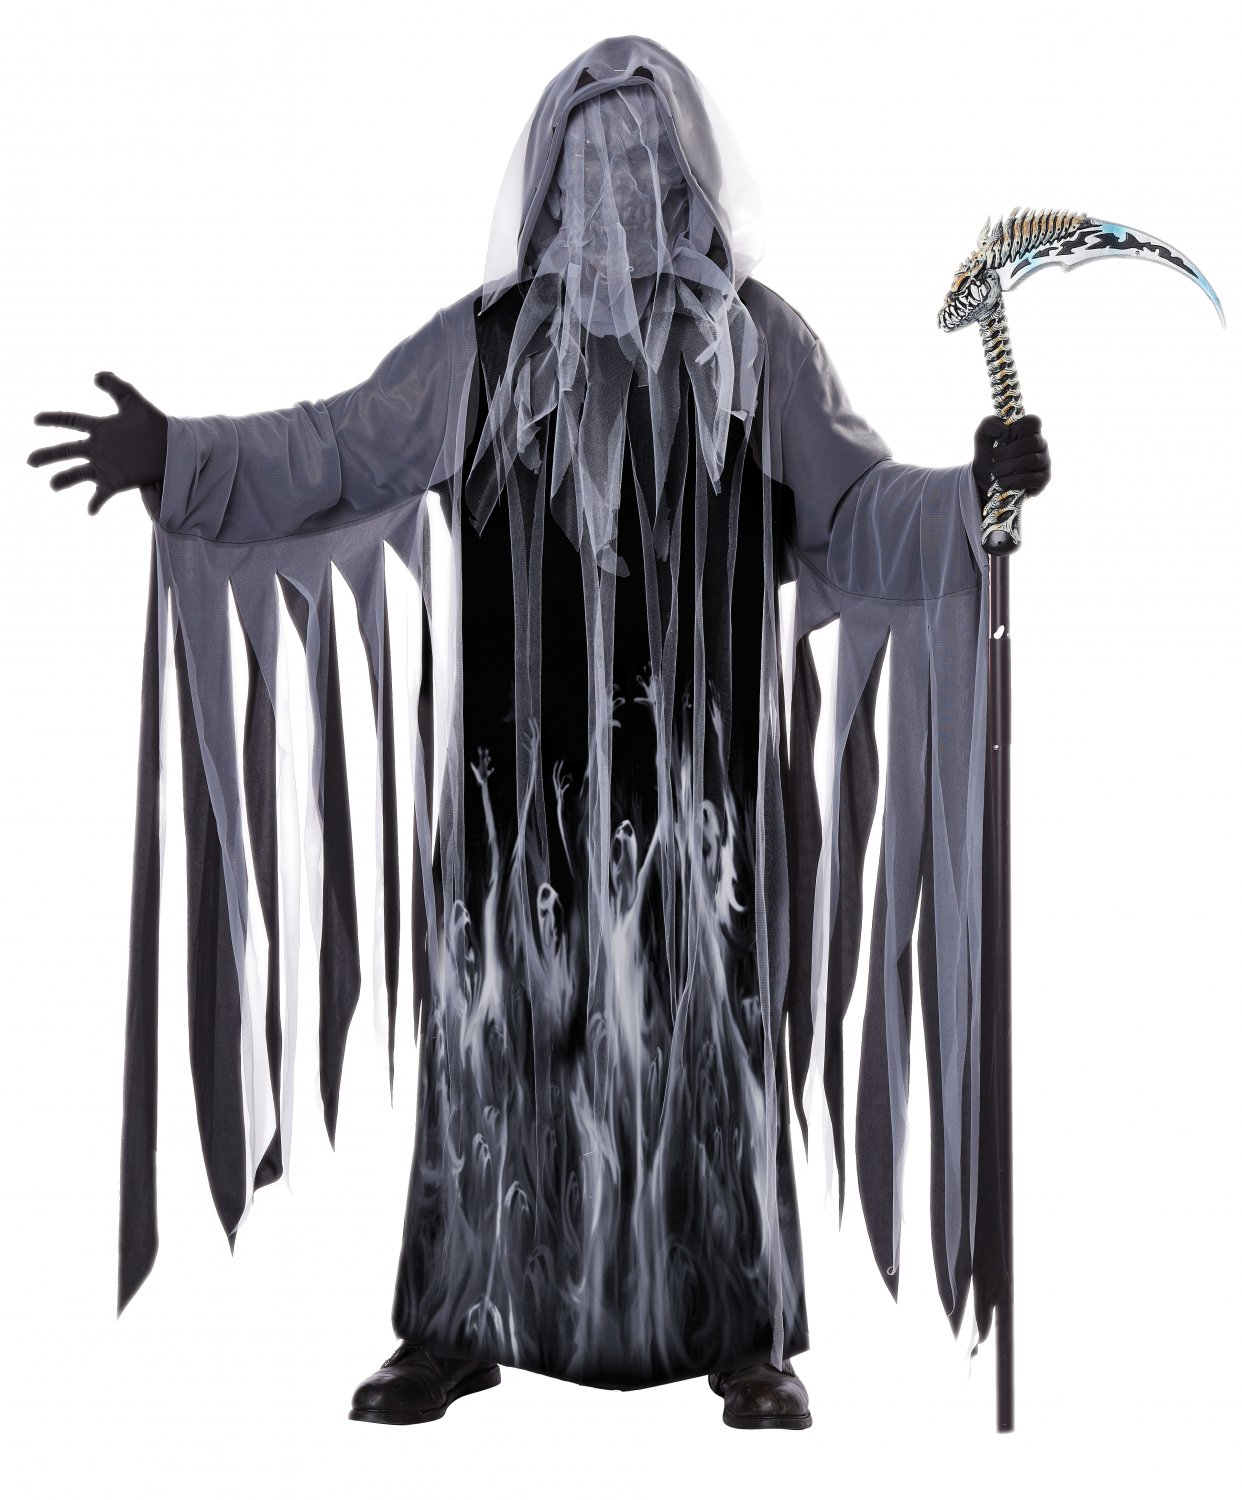 Grim Reaper Ghost of Christmas Soul Taker Adult Costume Size: Small/Medium #01356